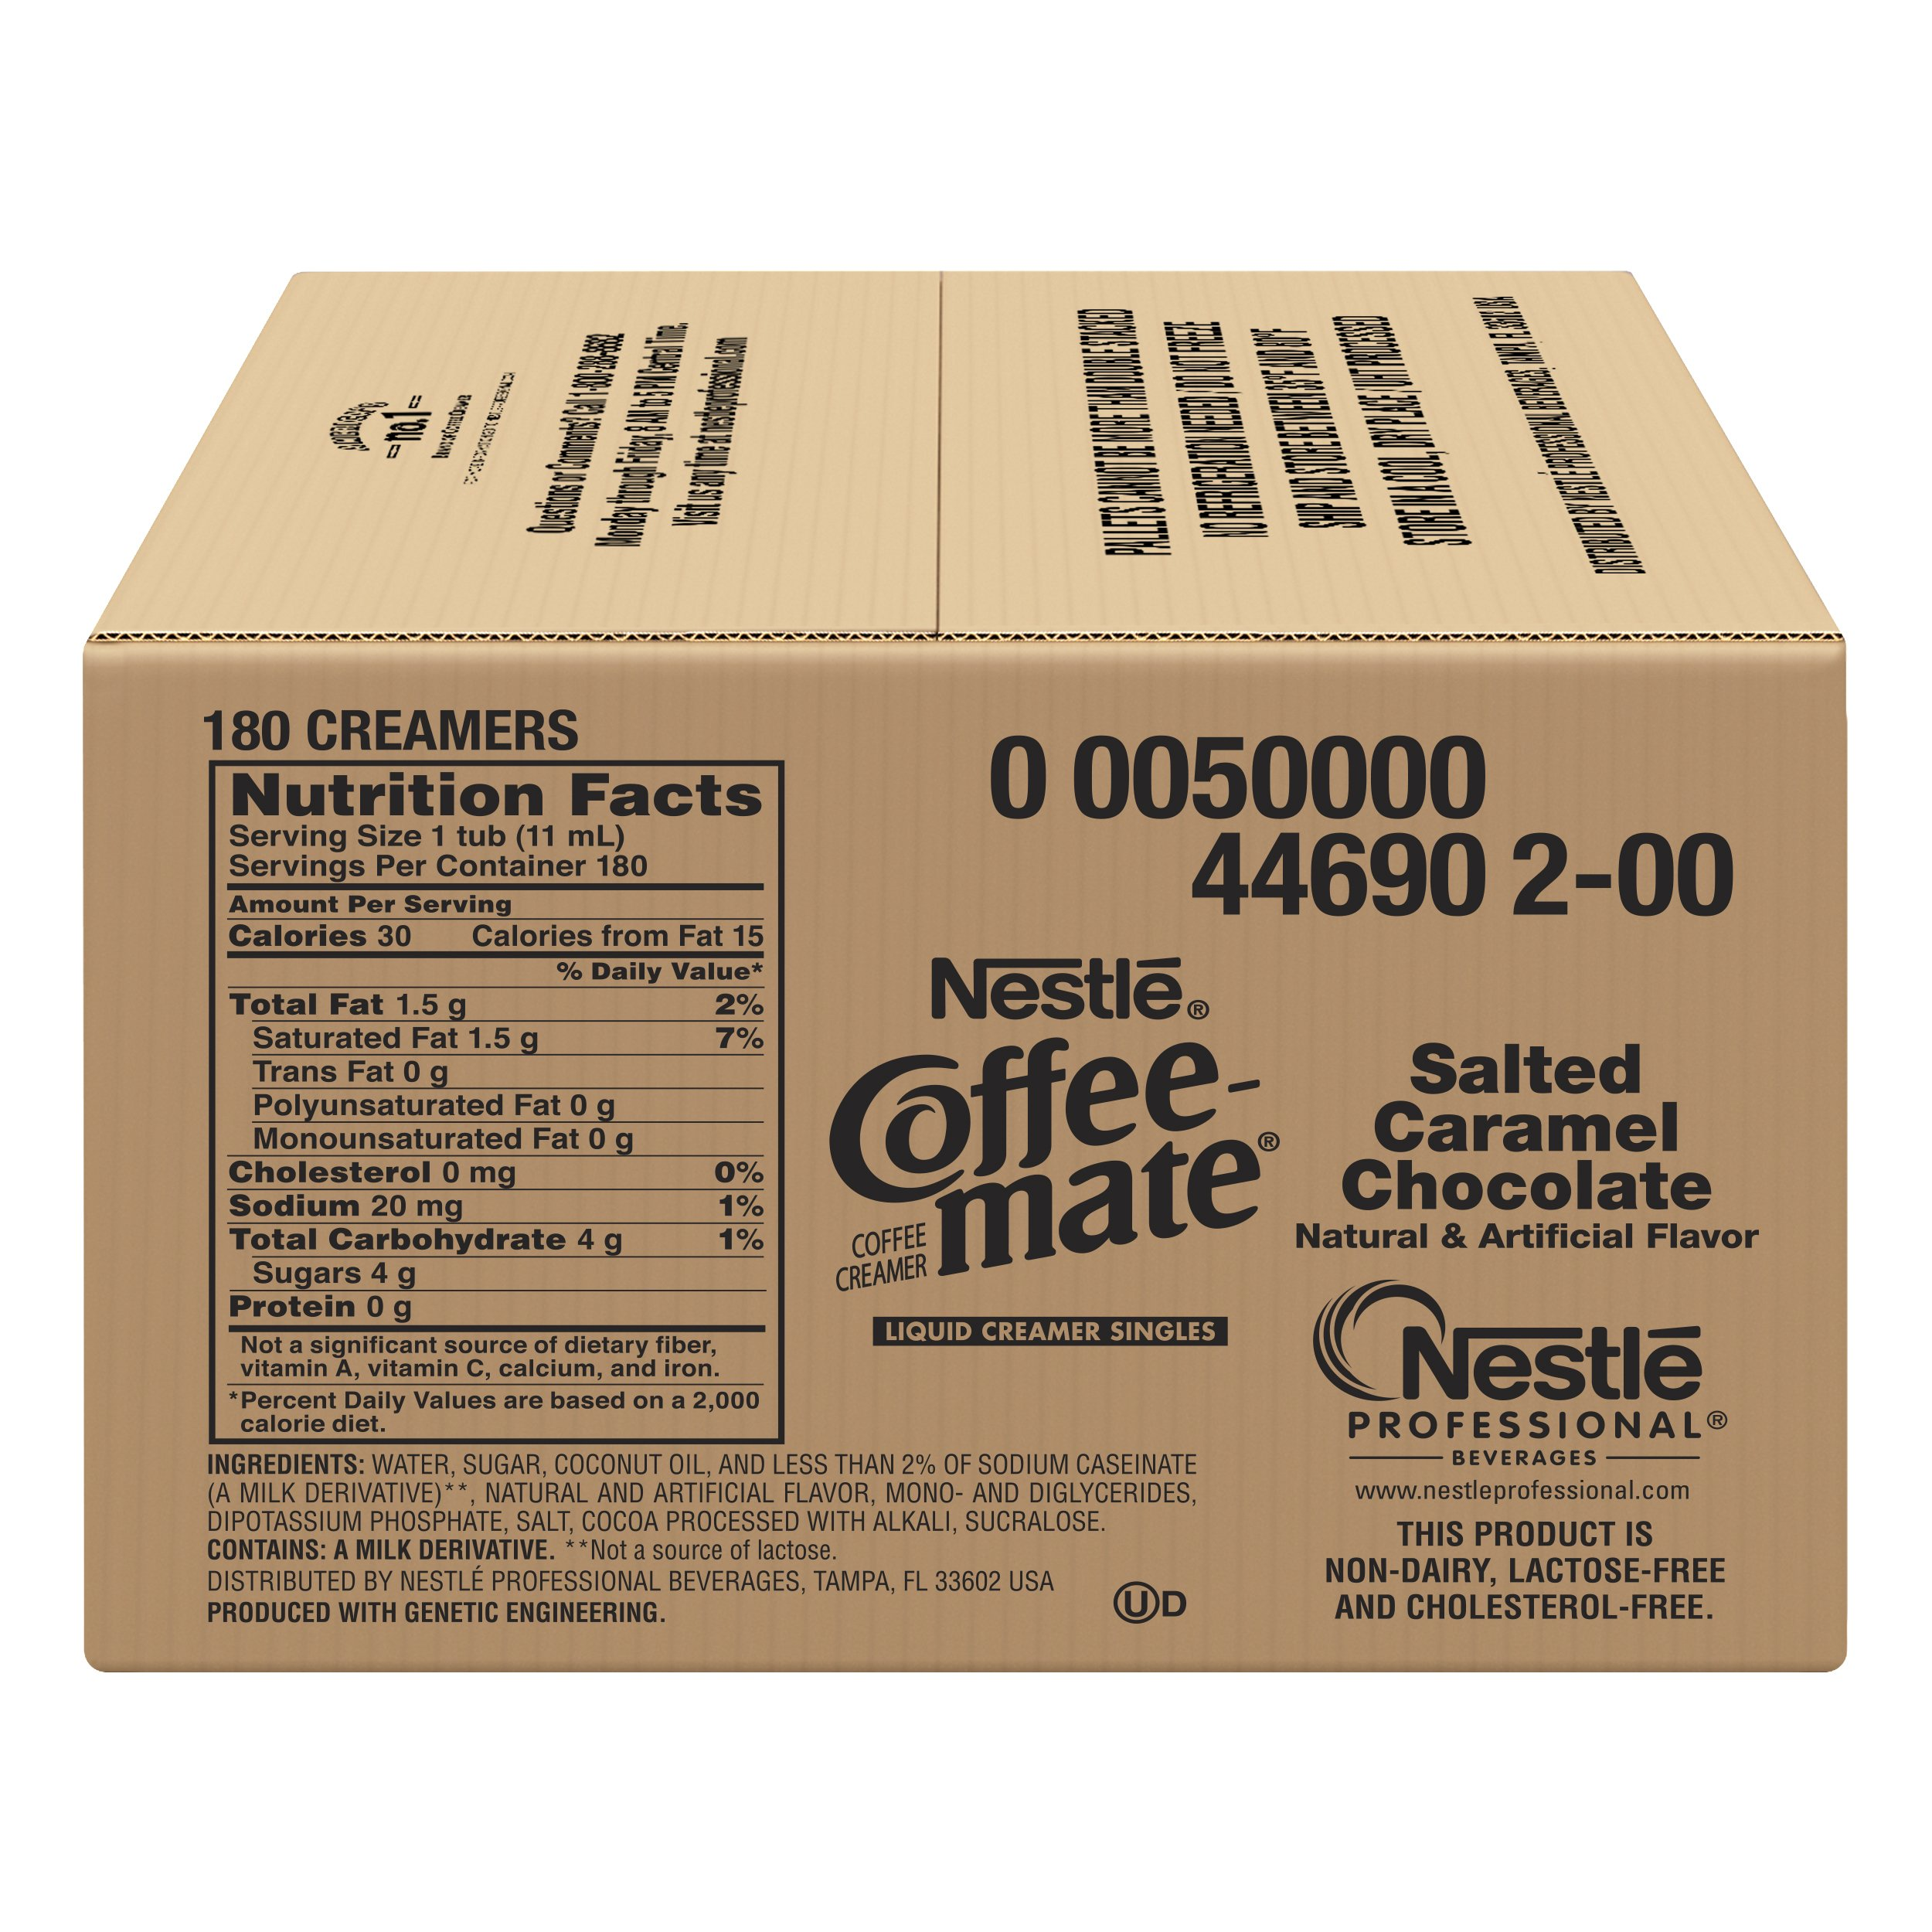 Nestle Coffee-mate Coffee Creamer, Salted Caramel Chocolate, liquid creamer singles, 180 Count (Pack of 1) by Nestle Coffee Mate (Image #6)